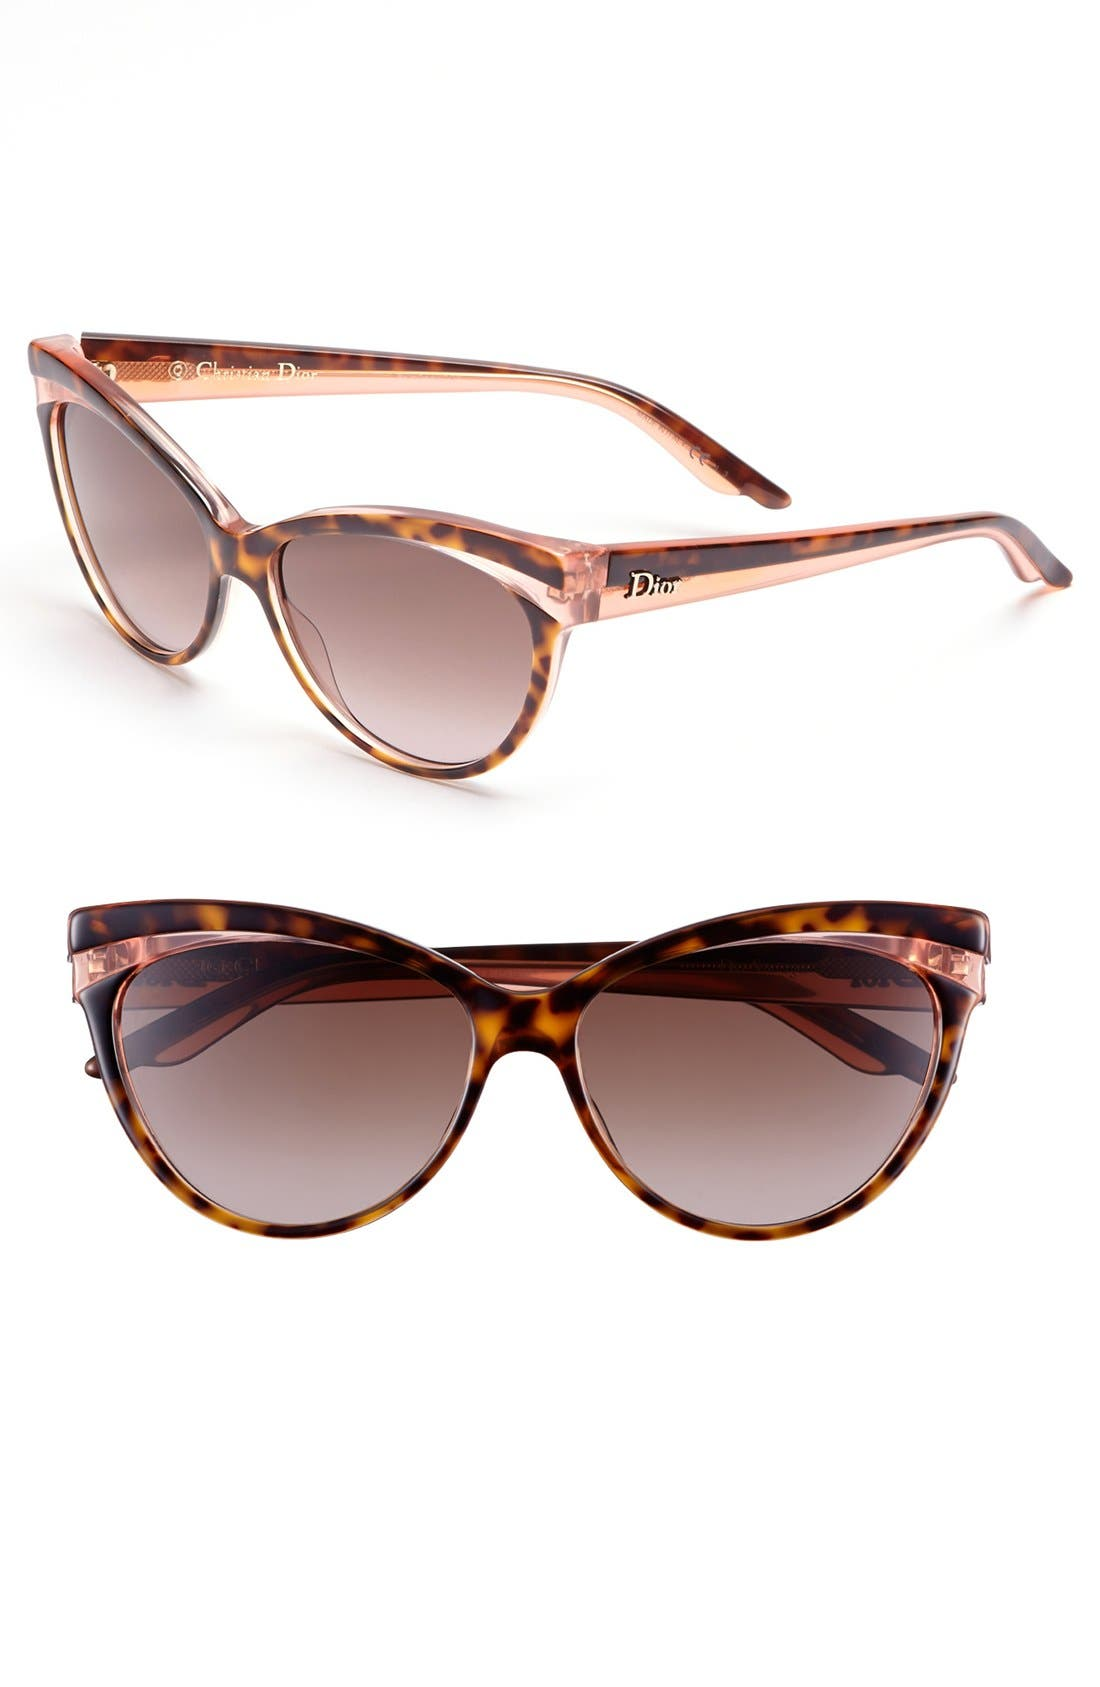 Alternate Image 1 Selected - Dior 'Sauvage' 56mm Retro Sunglasses